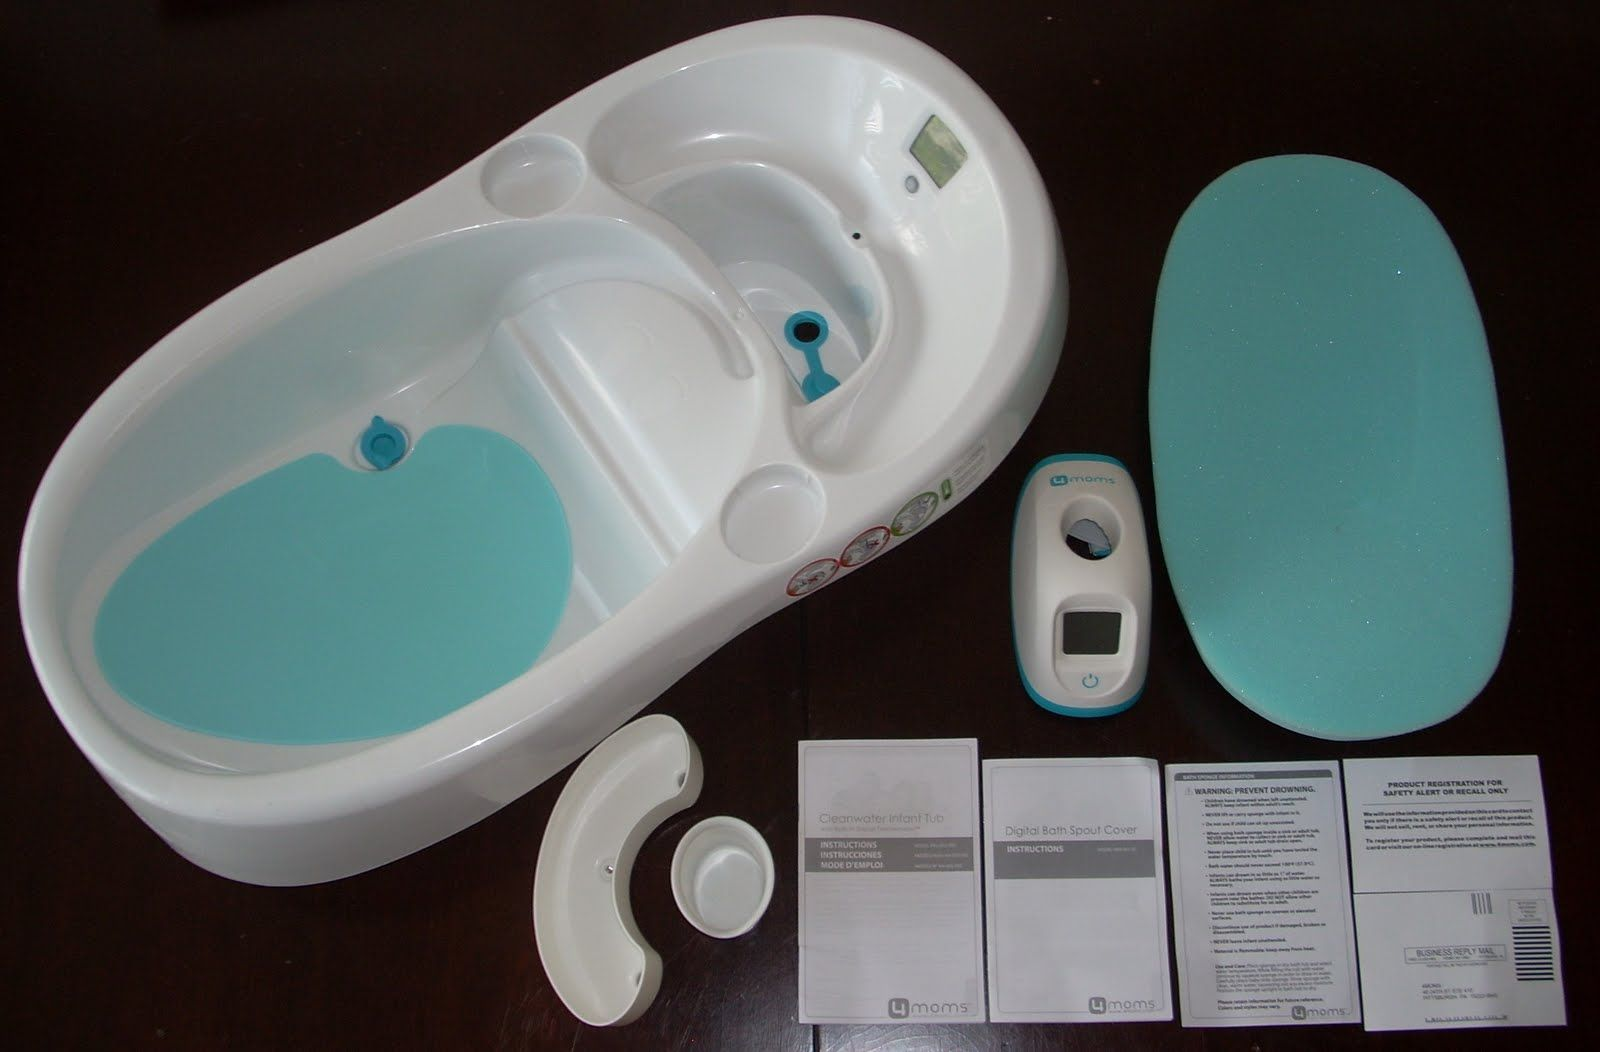 pictures 011 4moms infant bath tub. It includes a Built-in digital ...